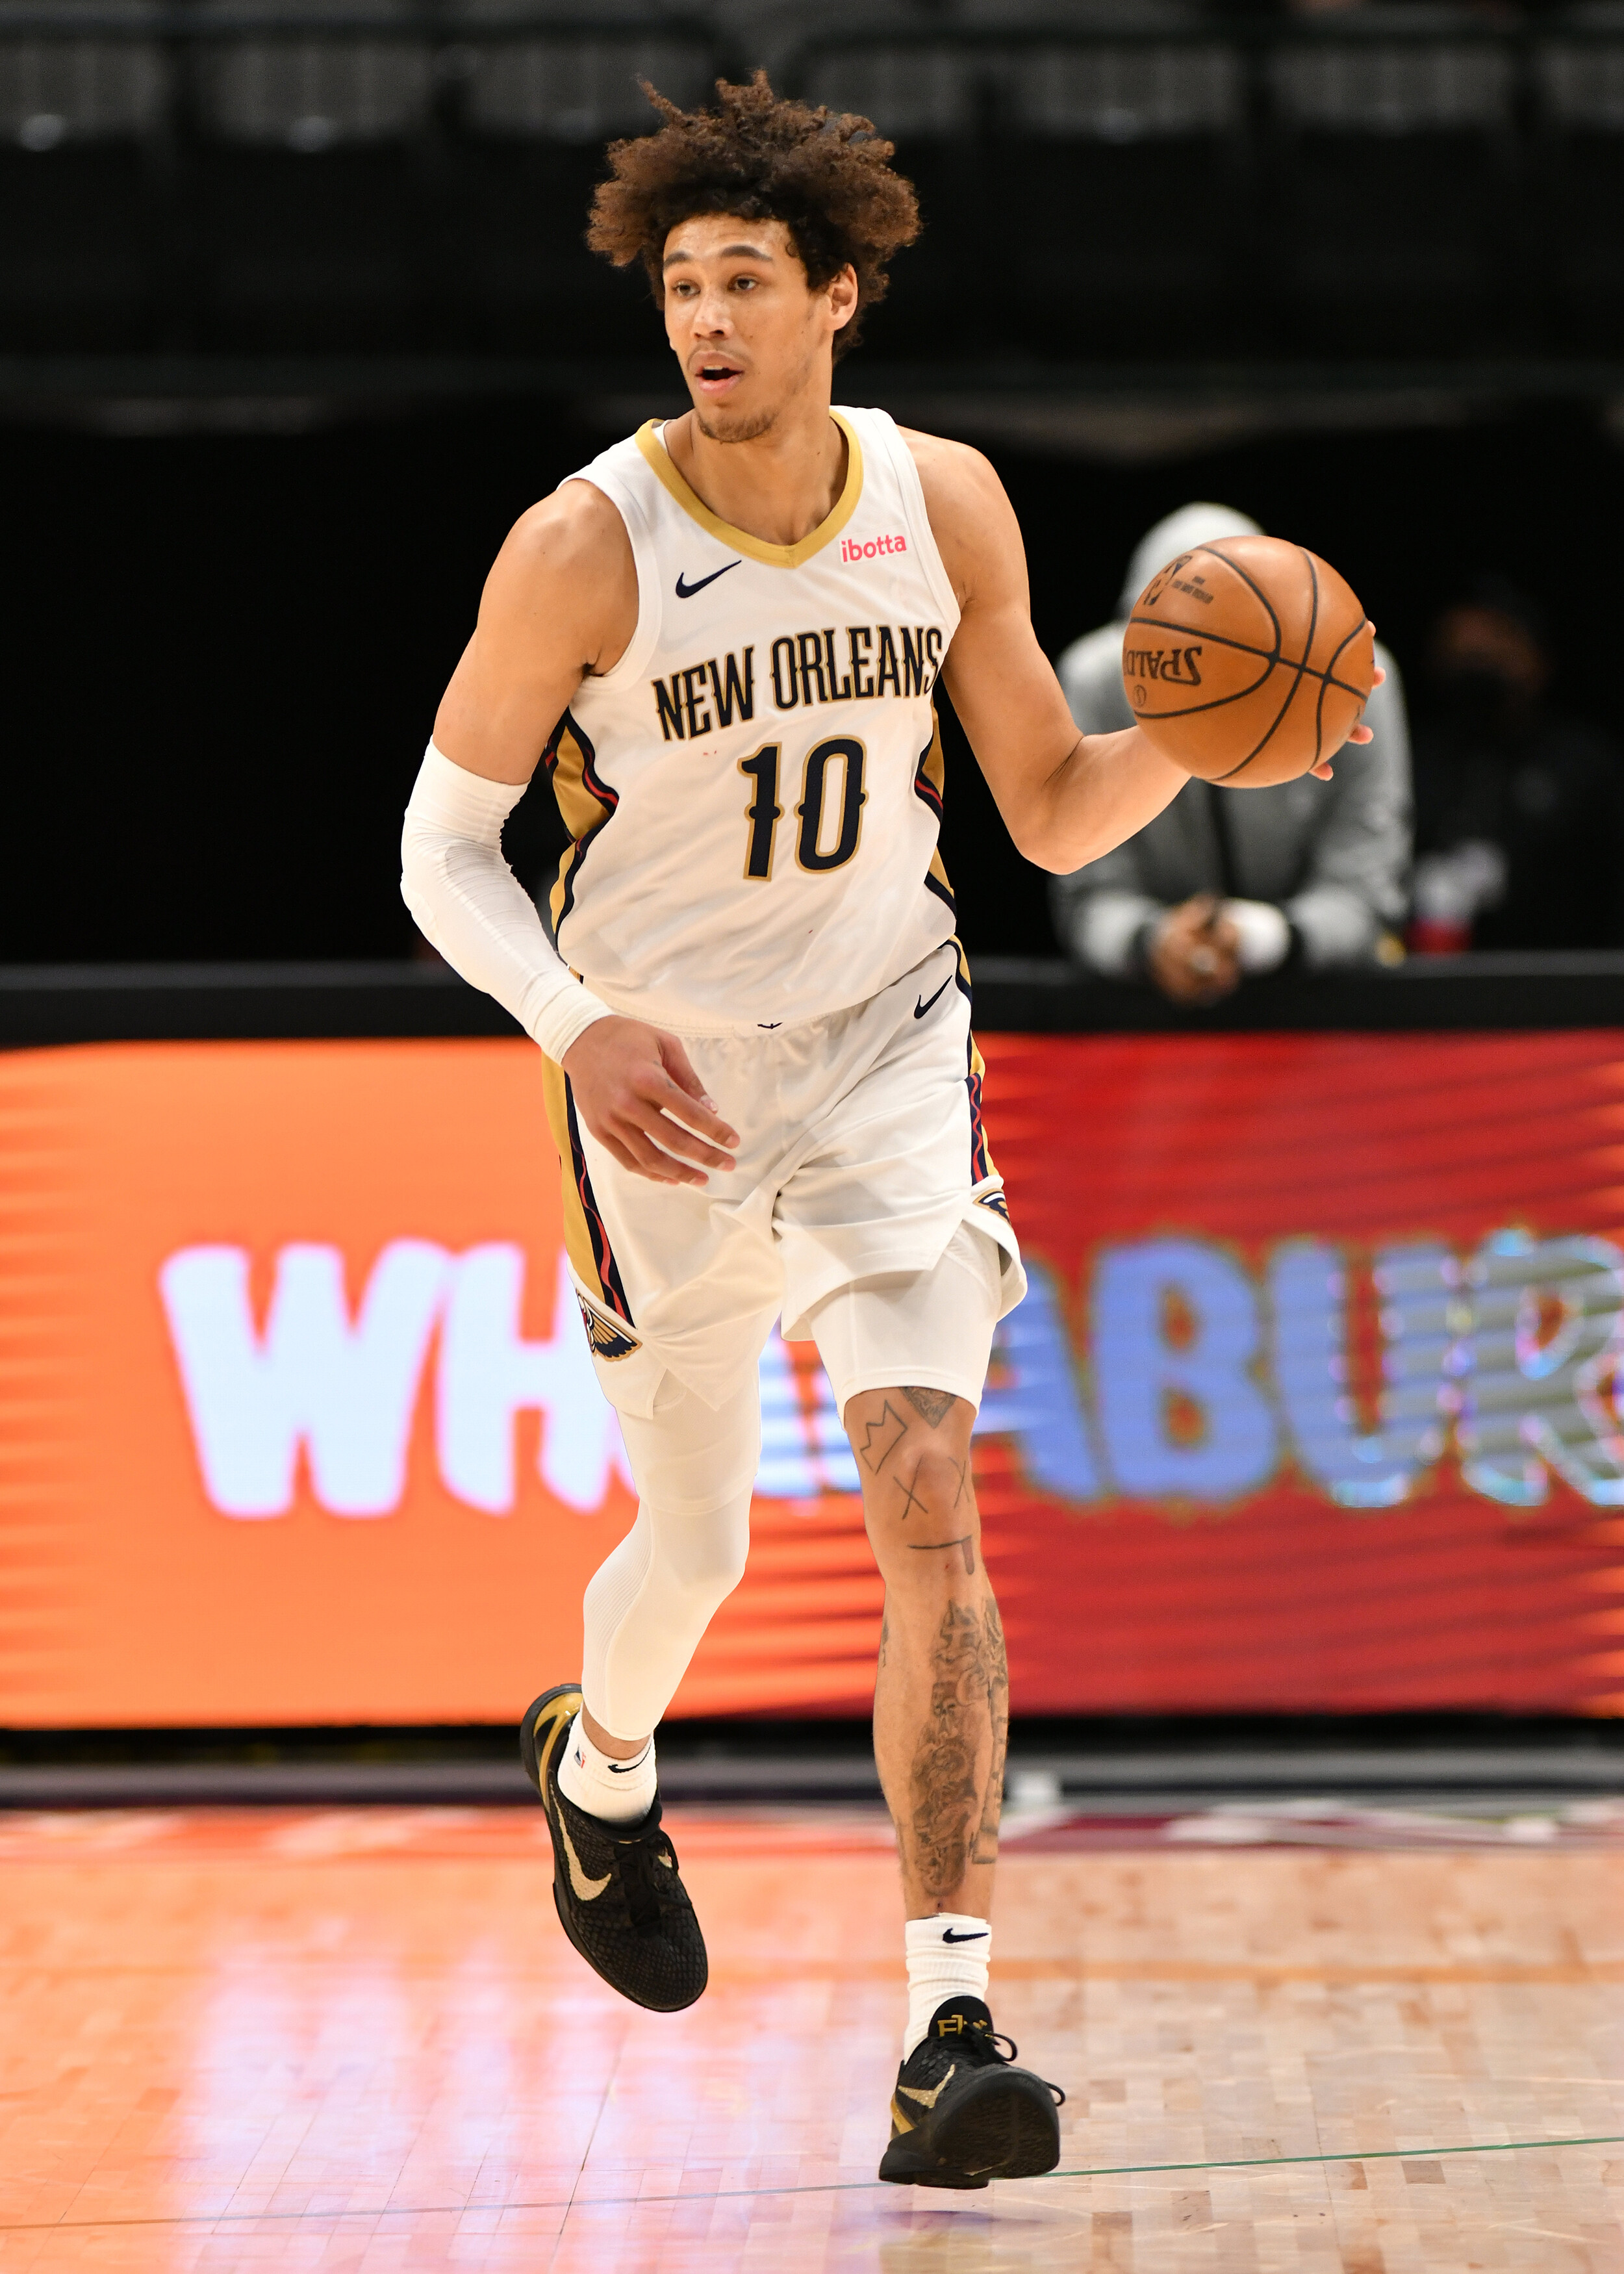 Los Angeles police investigating possible excessive use of force in arrest of NBA center Jaxson Hayes